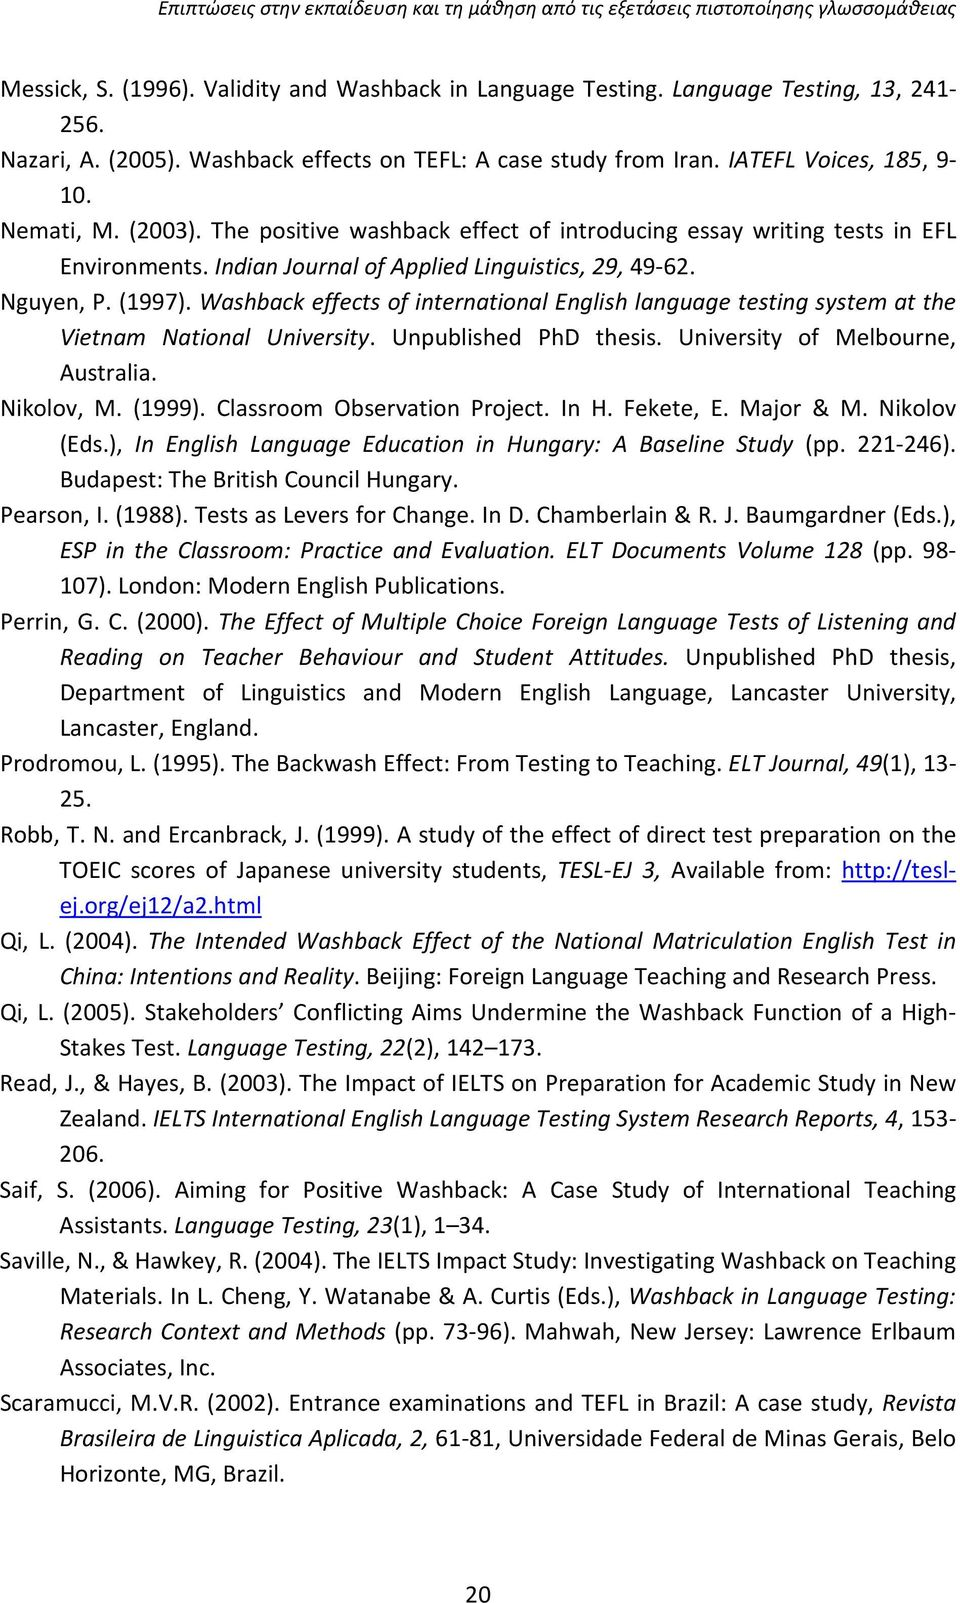 Washback effects of international English language testing system at the Vietnam National University. Unpublished PhD thesis. University of Melbourne, Australia. Nikolov, M. (1999).